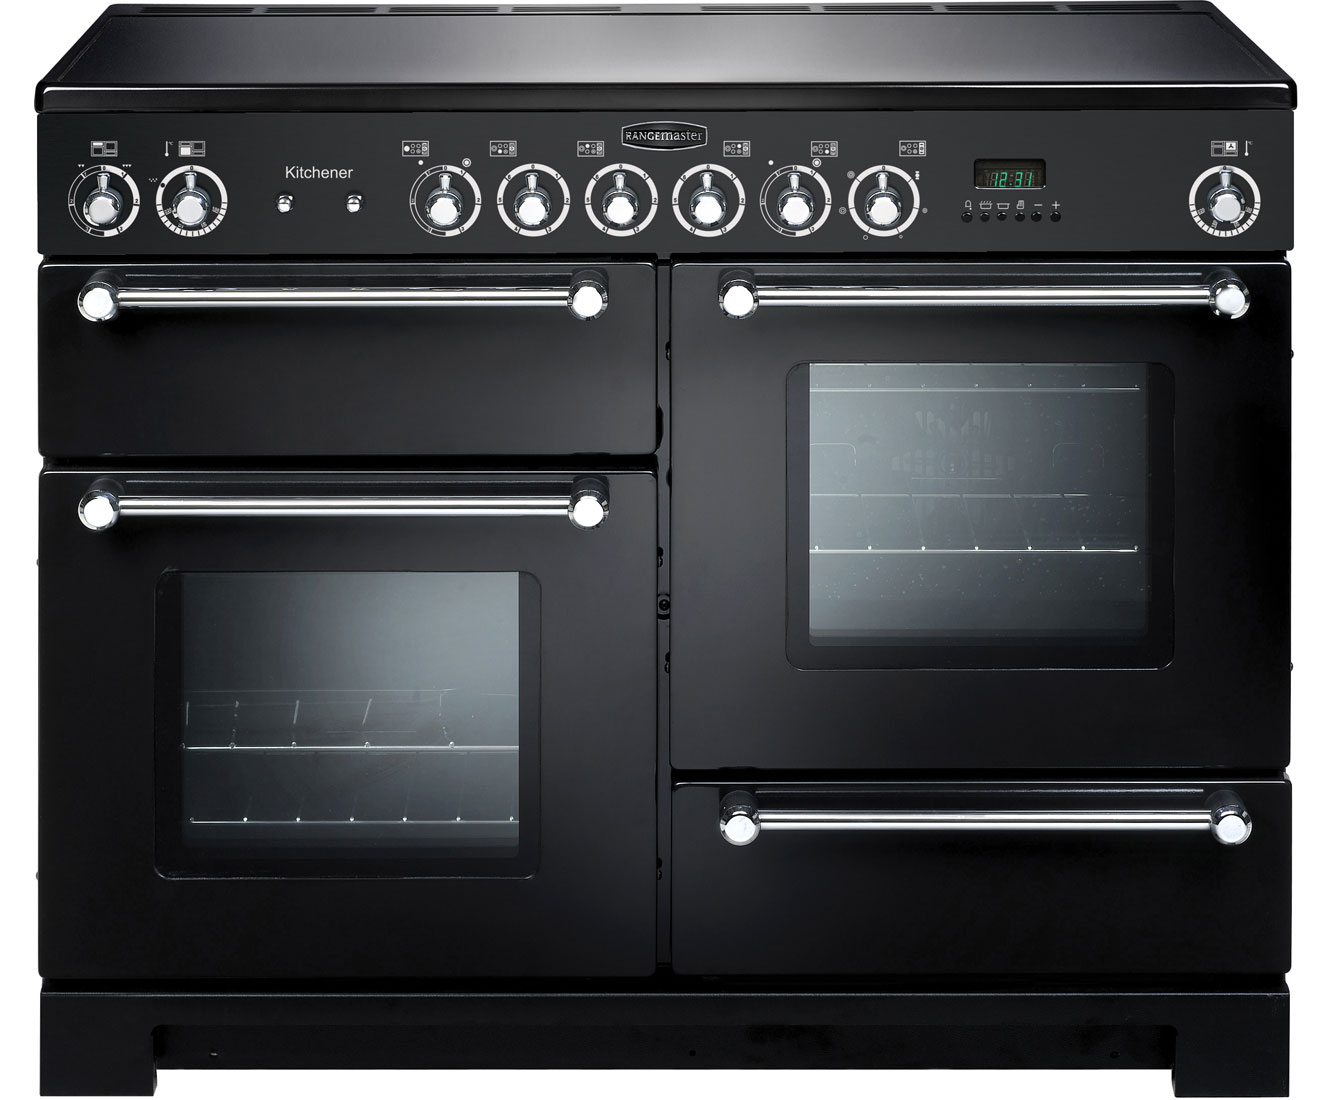 Rangemaster Kitchener KCH110ECBLC Free Standing Range Cooker in Black  Chrome